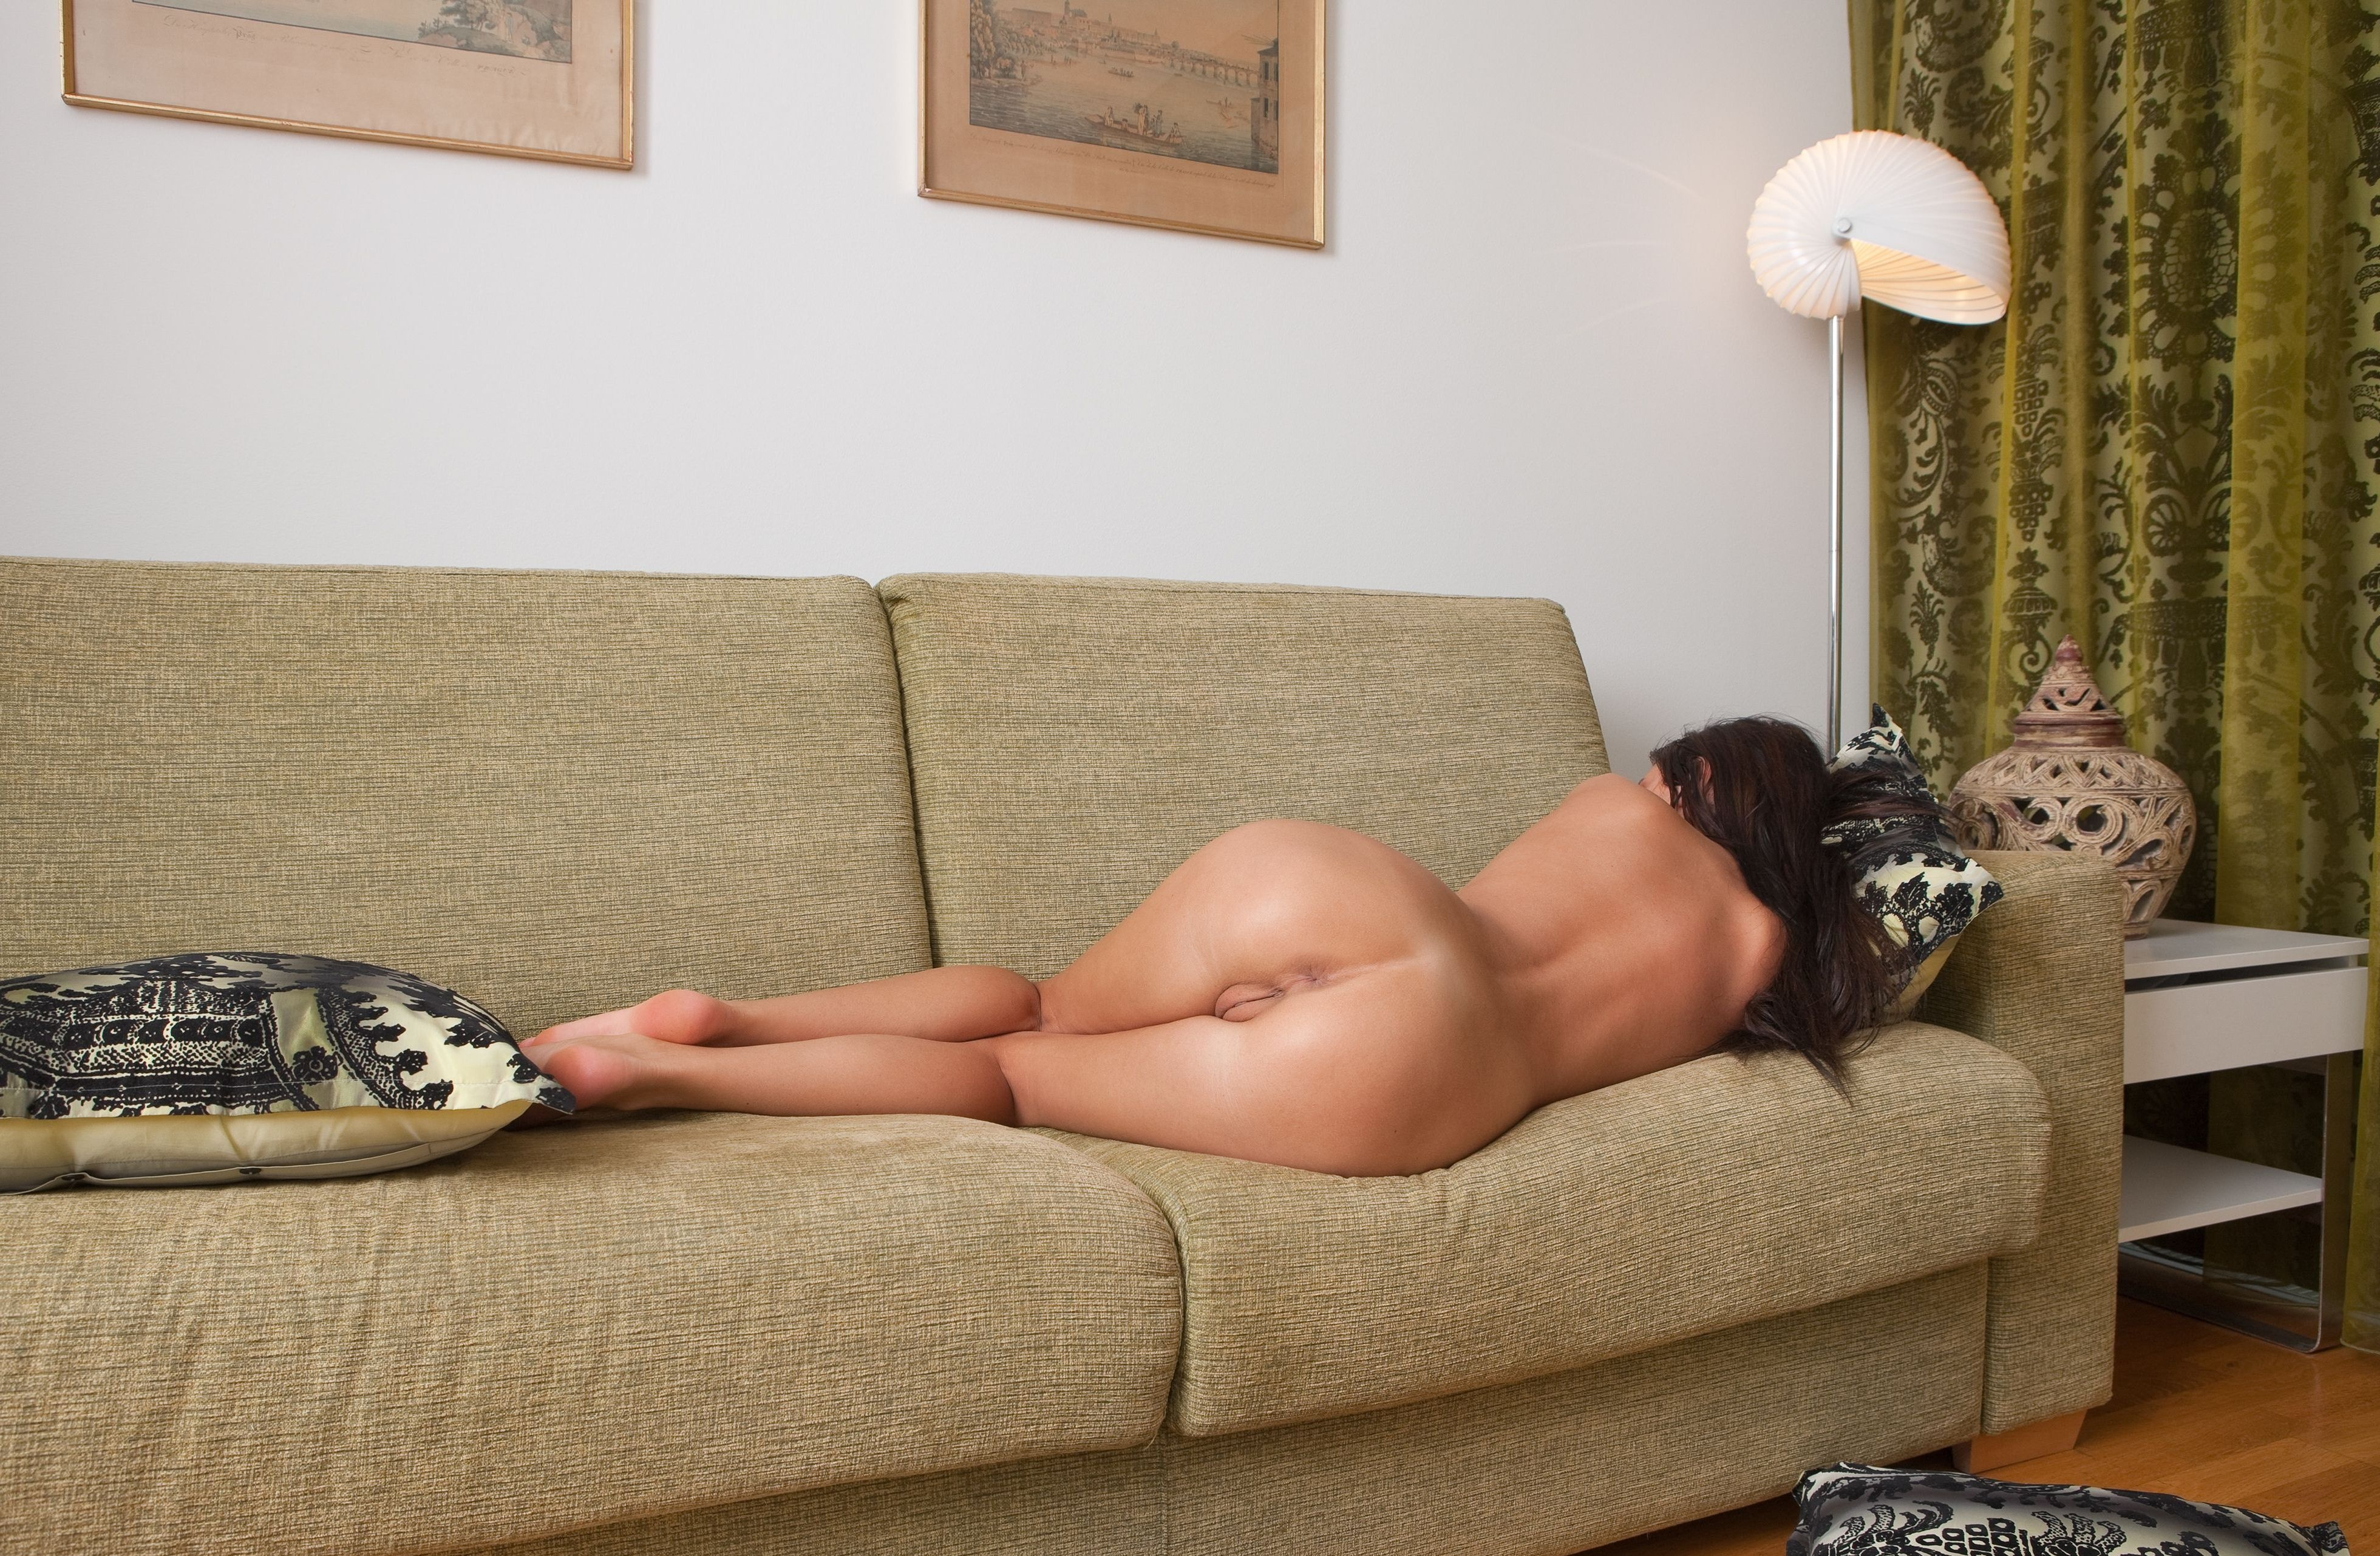 free fully nude females showing ass feet pussy